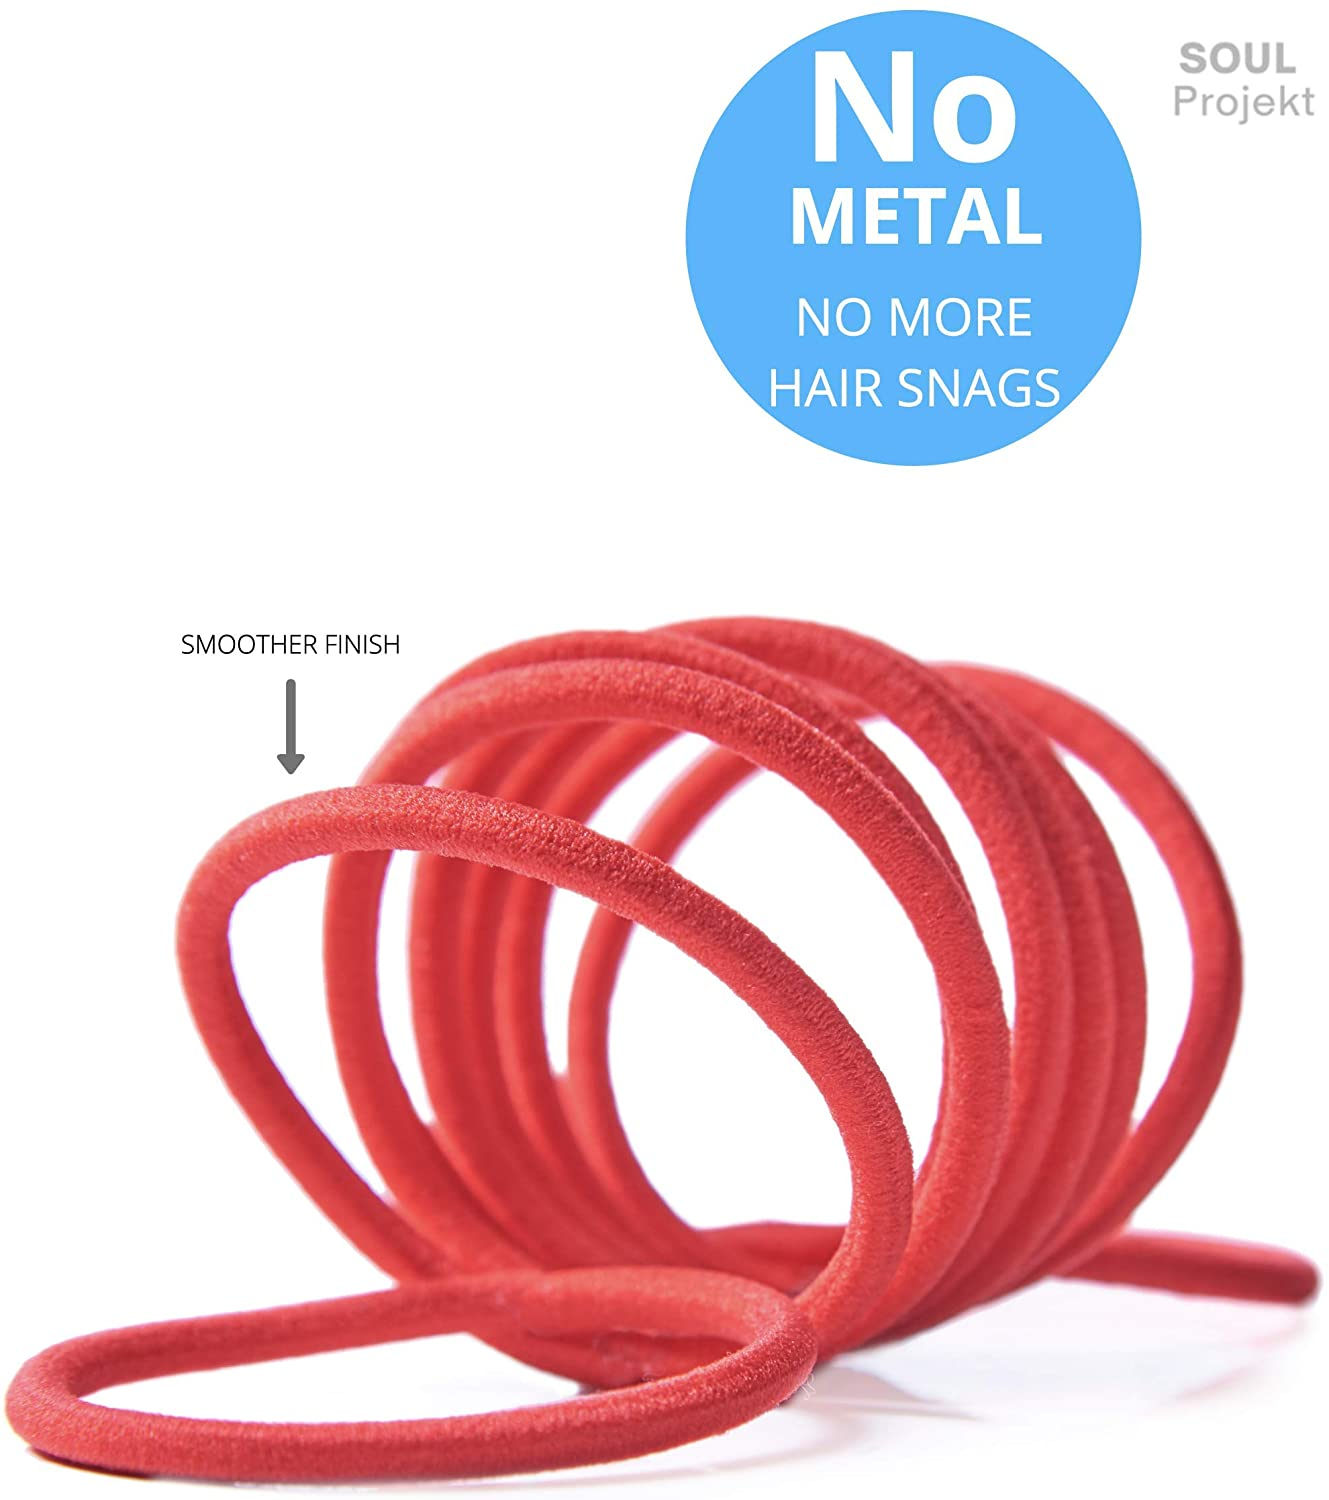 Soul Projekt Hair Bands 100 Pack 4mm/Excellent Multipurpose Ties(Red 4mm), No Metal Tough Elastic Hair Bobbles for Numerous Hair Types/Pigtail, Plaiting, Ponytails & Buns For School, Work or Gym Usage